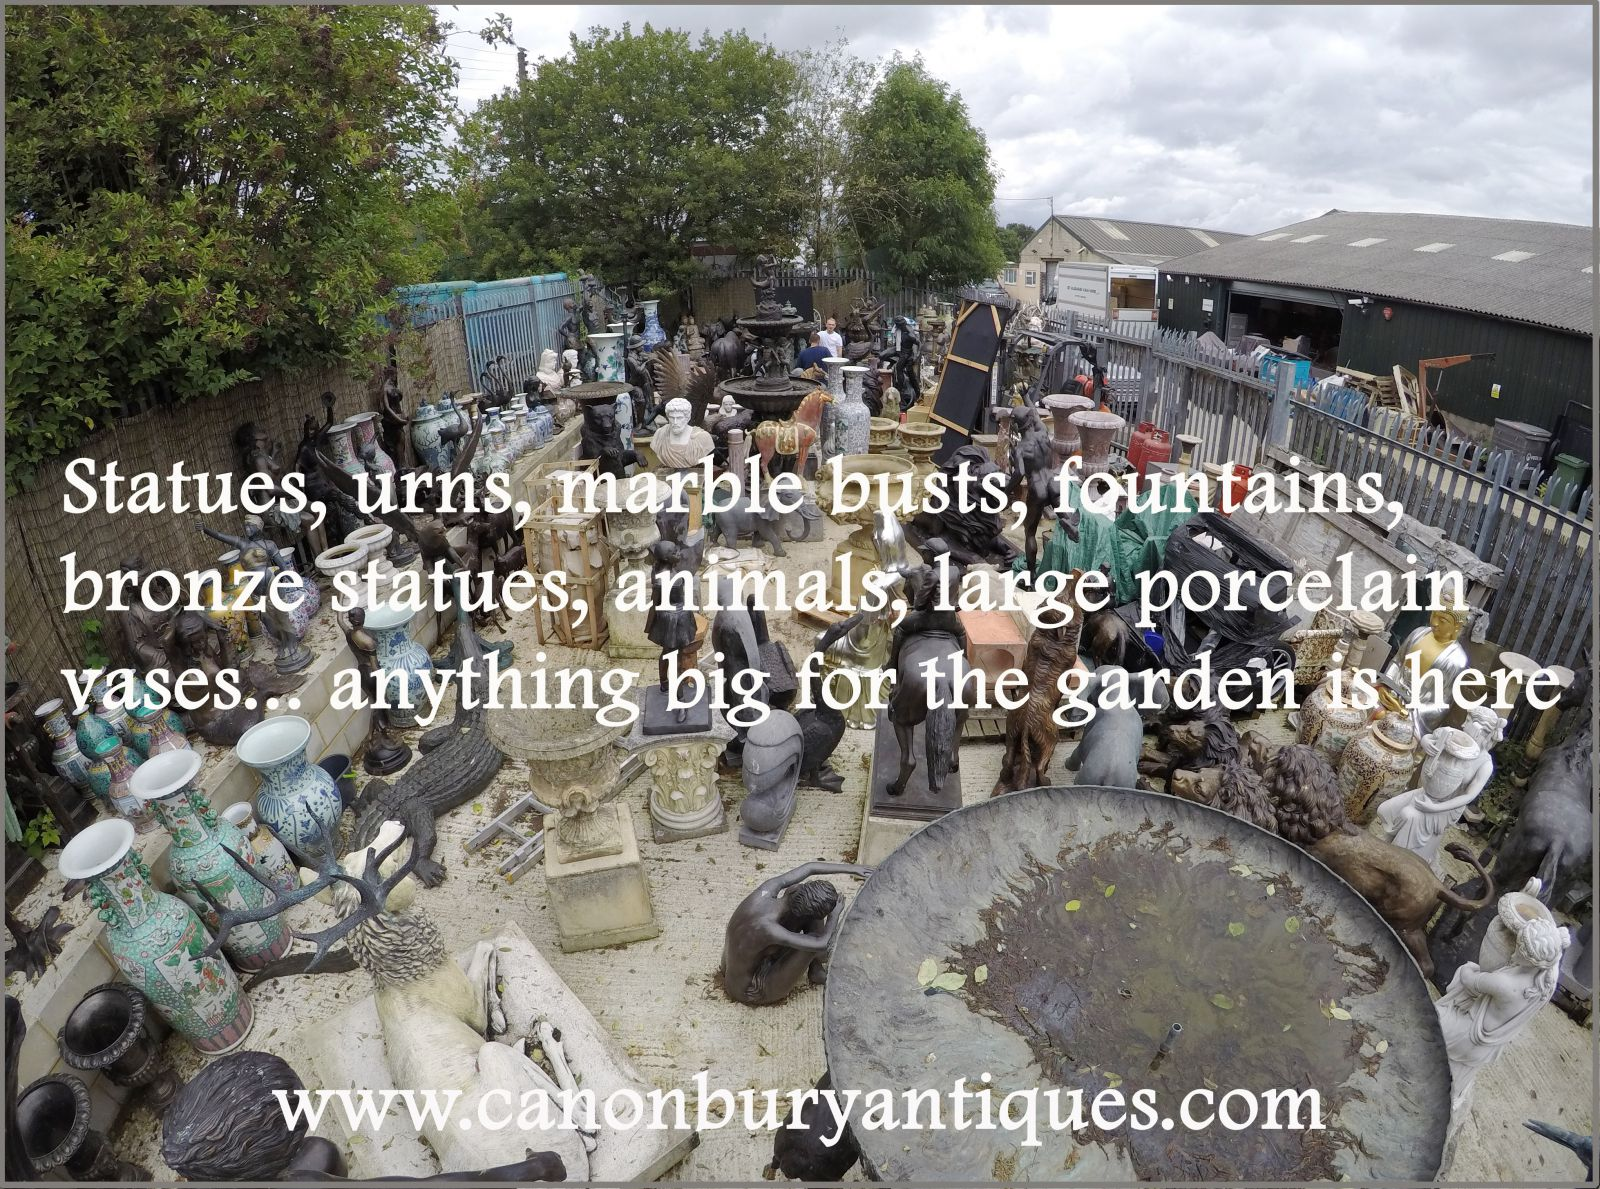 Large architectural pieces outside - fountains, statues, bronze statues and animals, marble carvings...